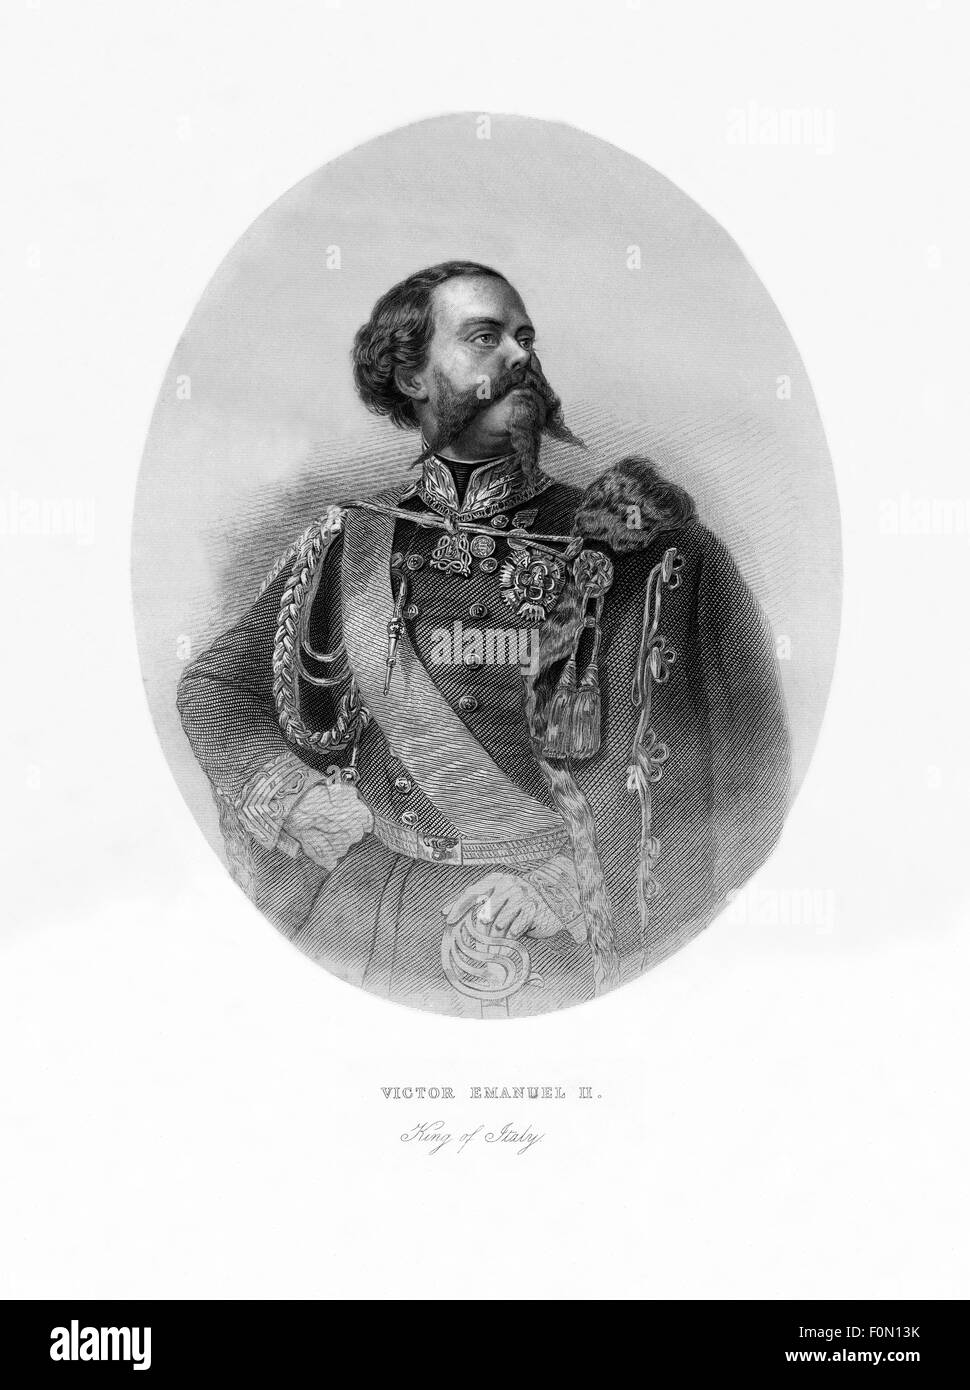 Victor Emmanuel II of Italy, Antique Engraving, 1865 - Stock Image